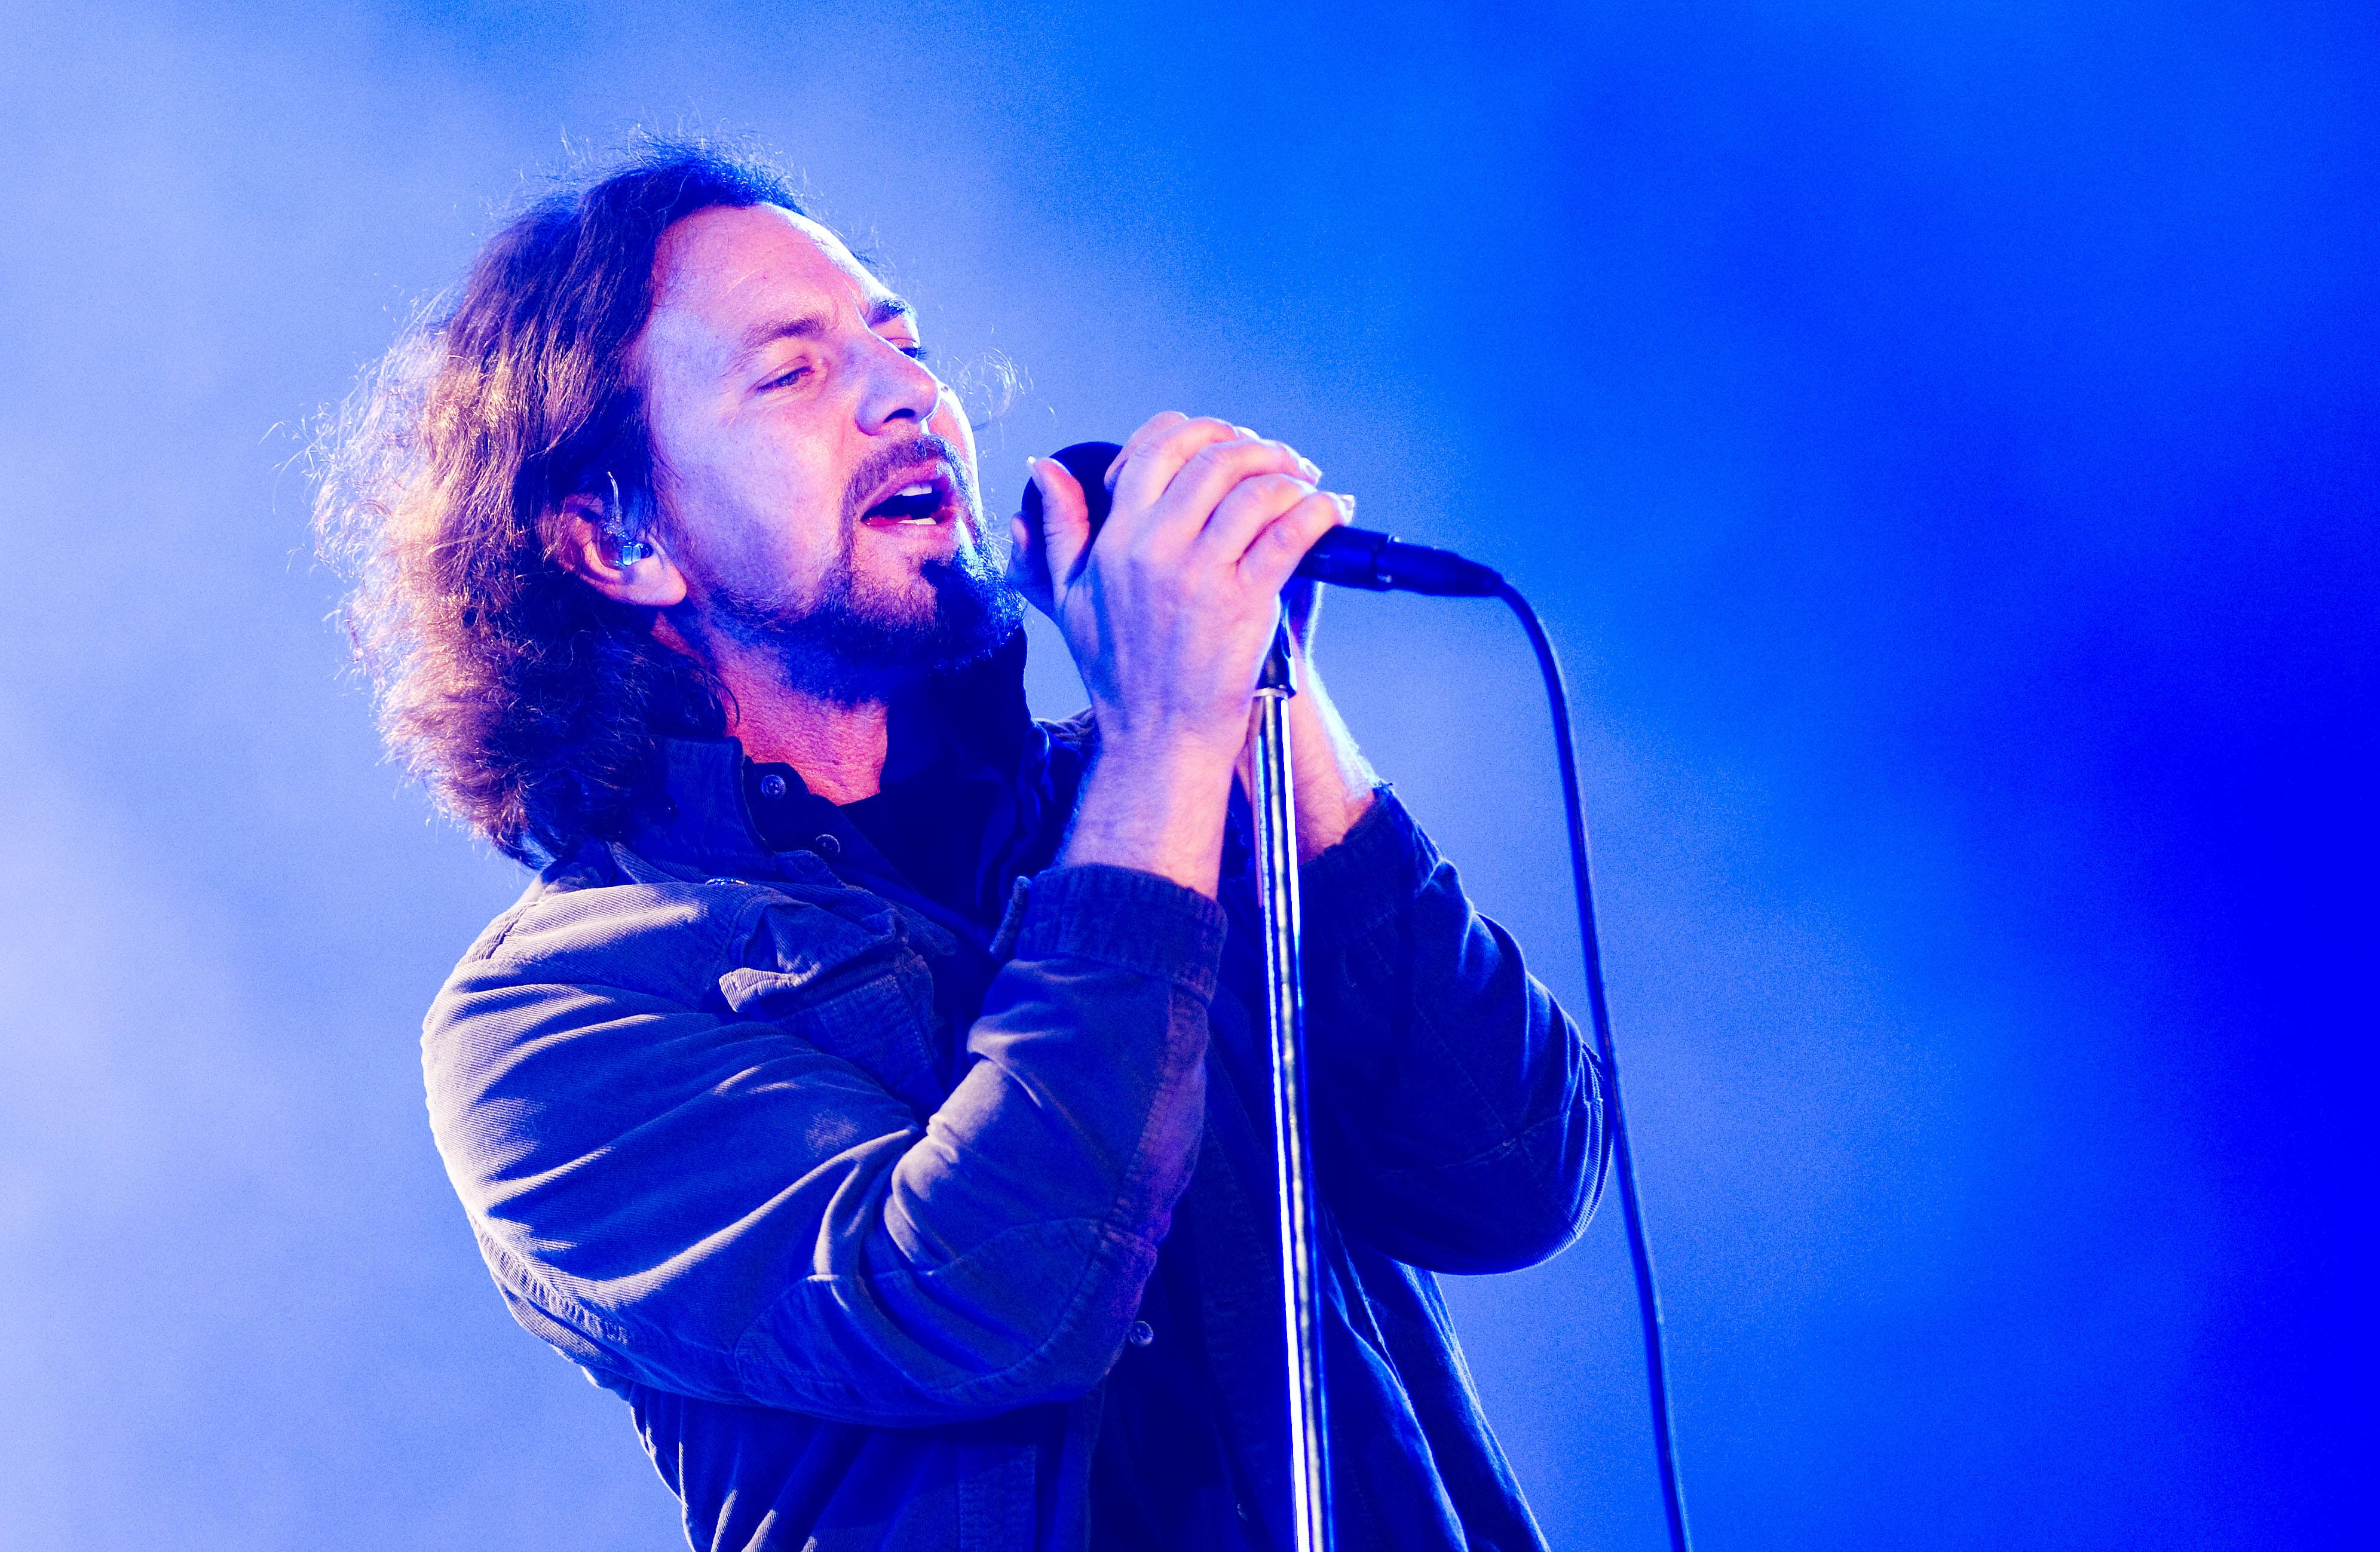 Watch Pearl Jam Perform 'Dance of the Clairvoyants' For the First Time [VIDEO]